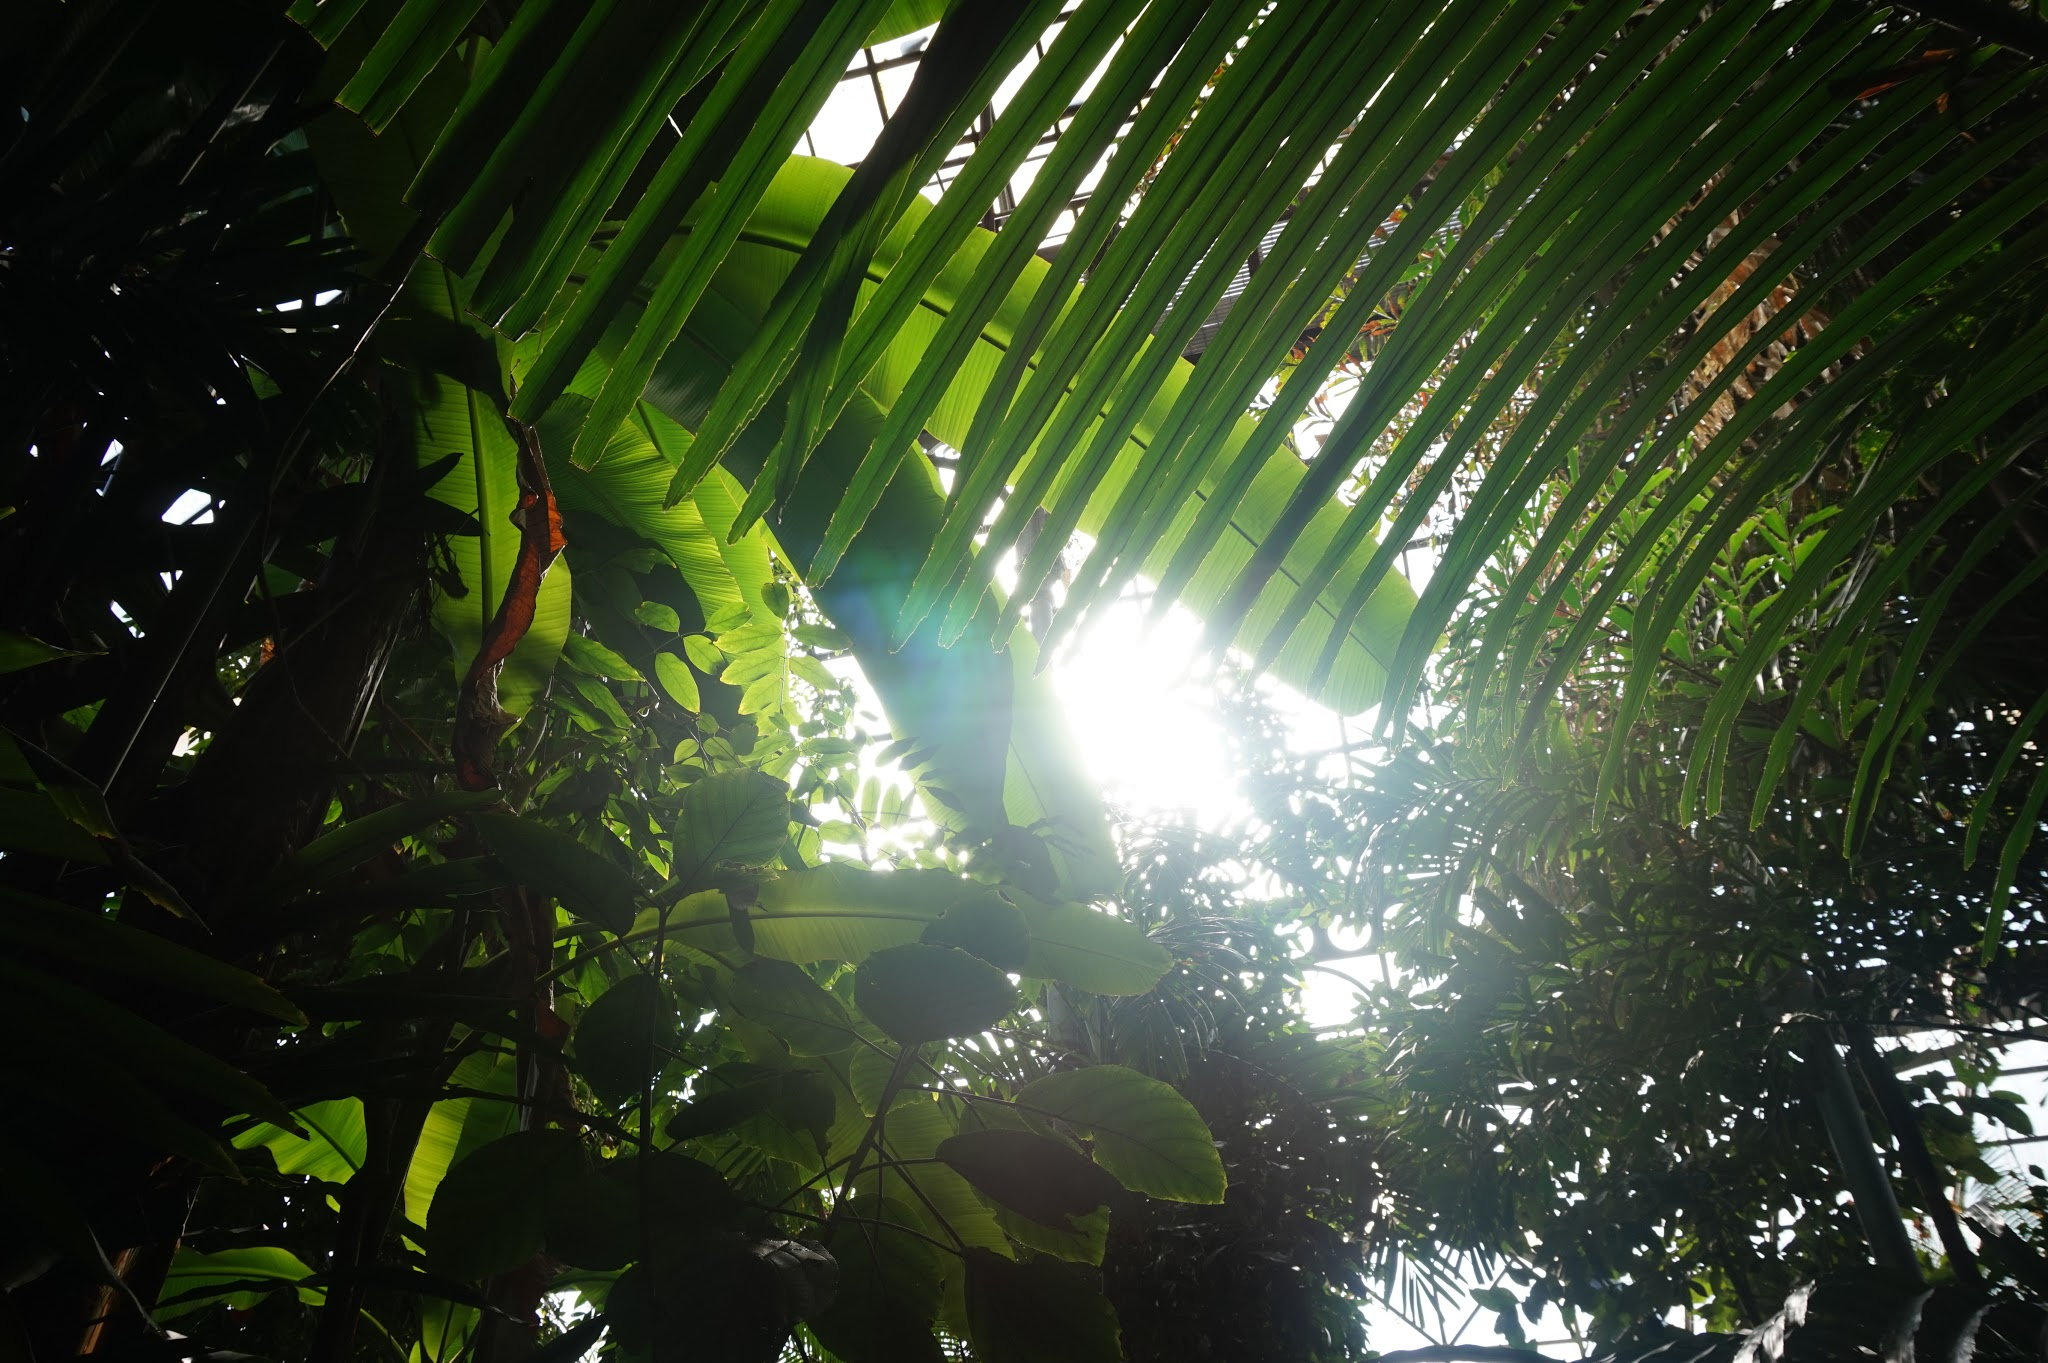 sunlight streaming through huge tall plants